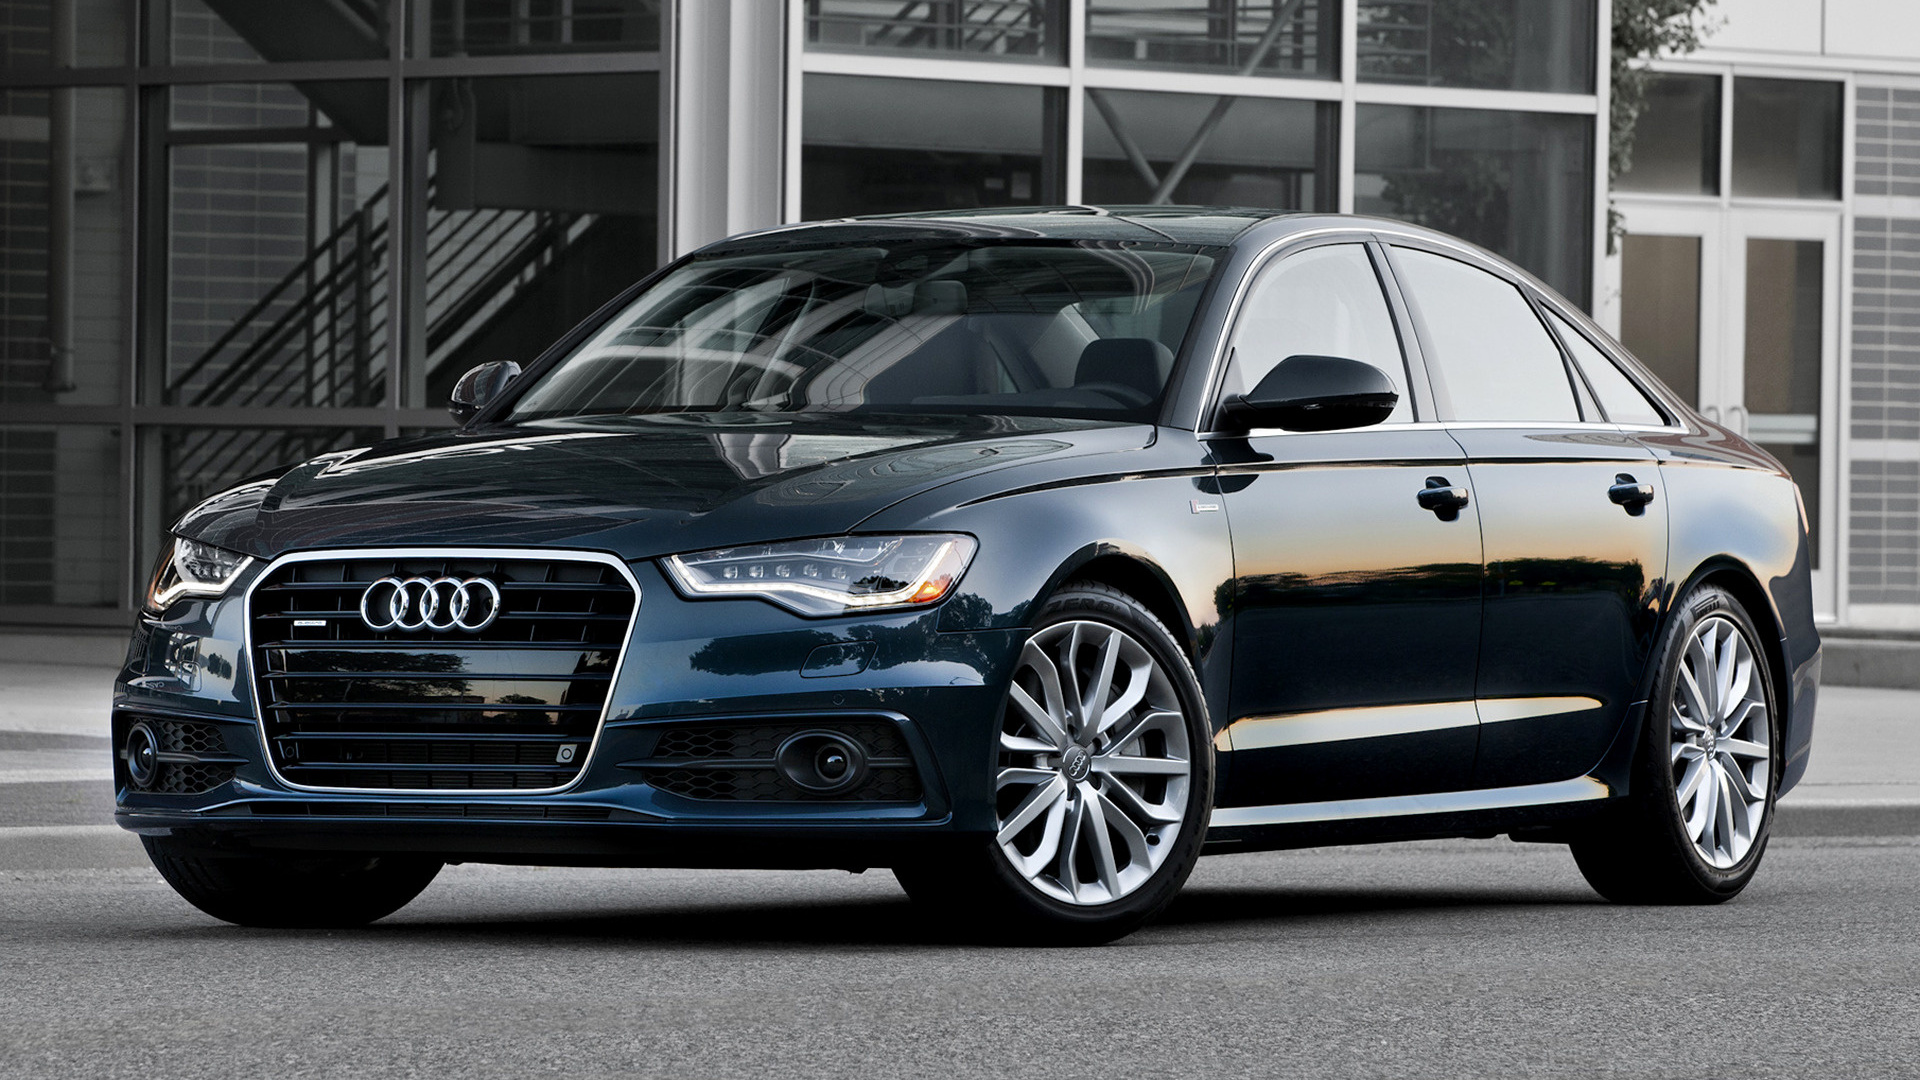 2012 Audi A6 Sedan S line (US) - Wallpapers and HD Images ...